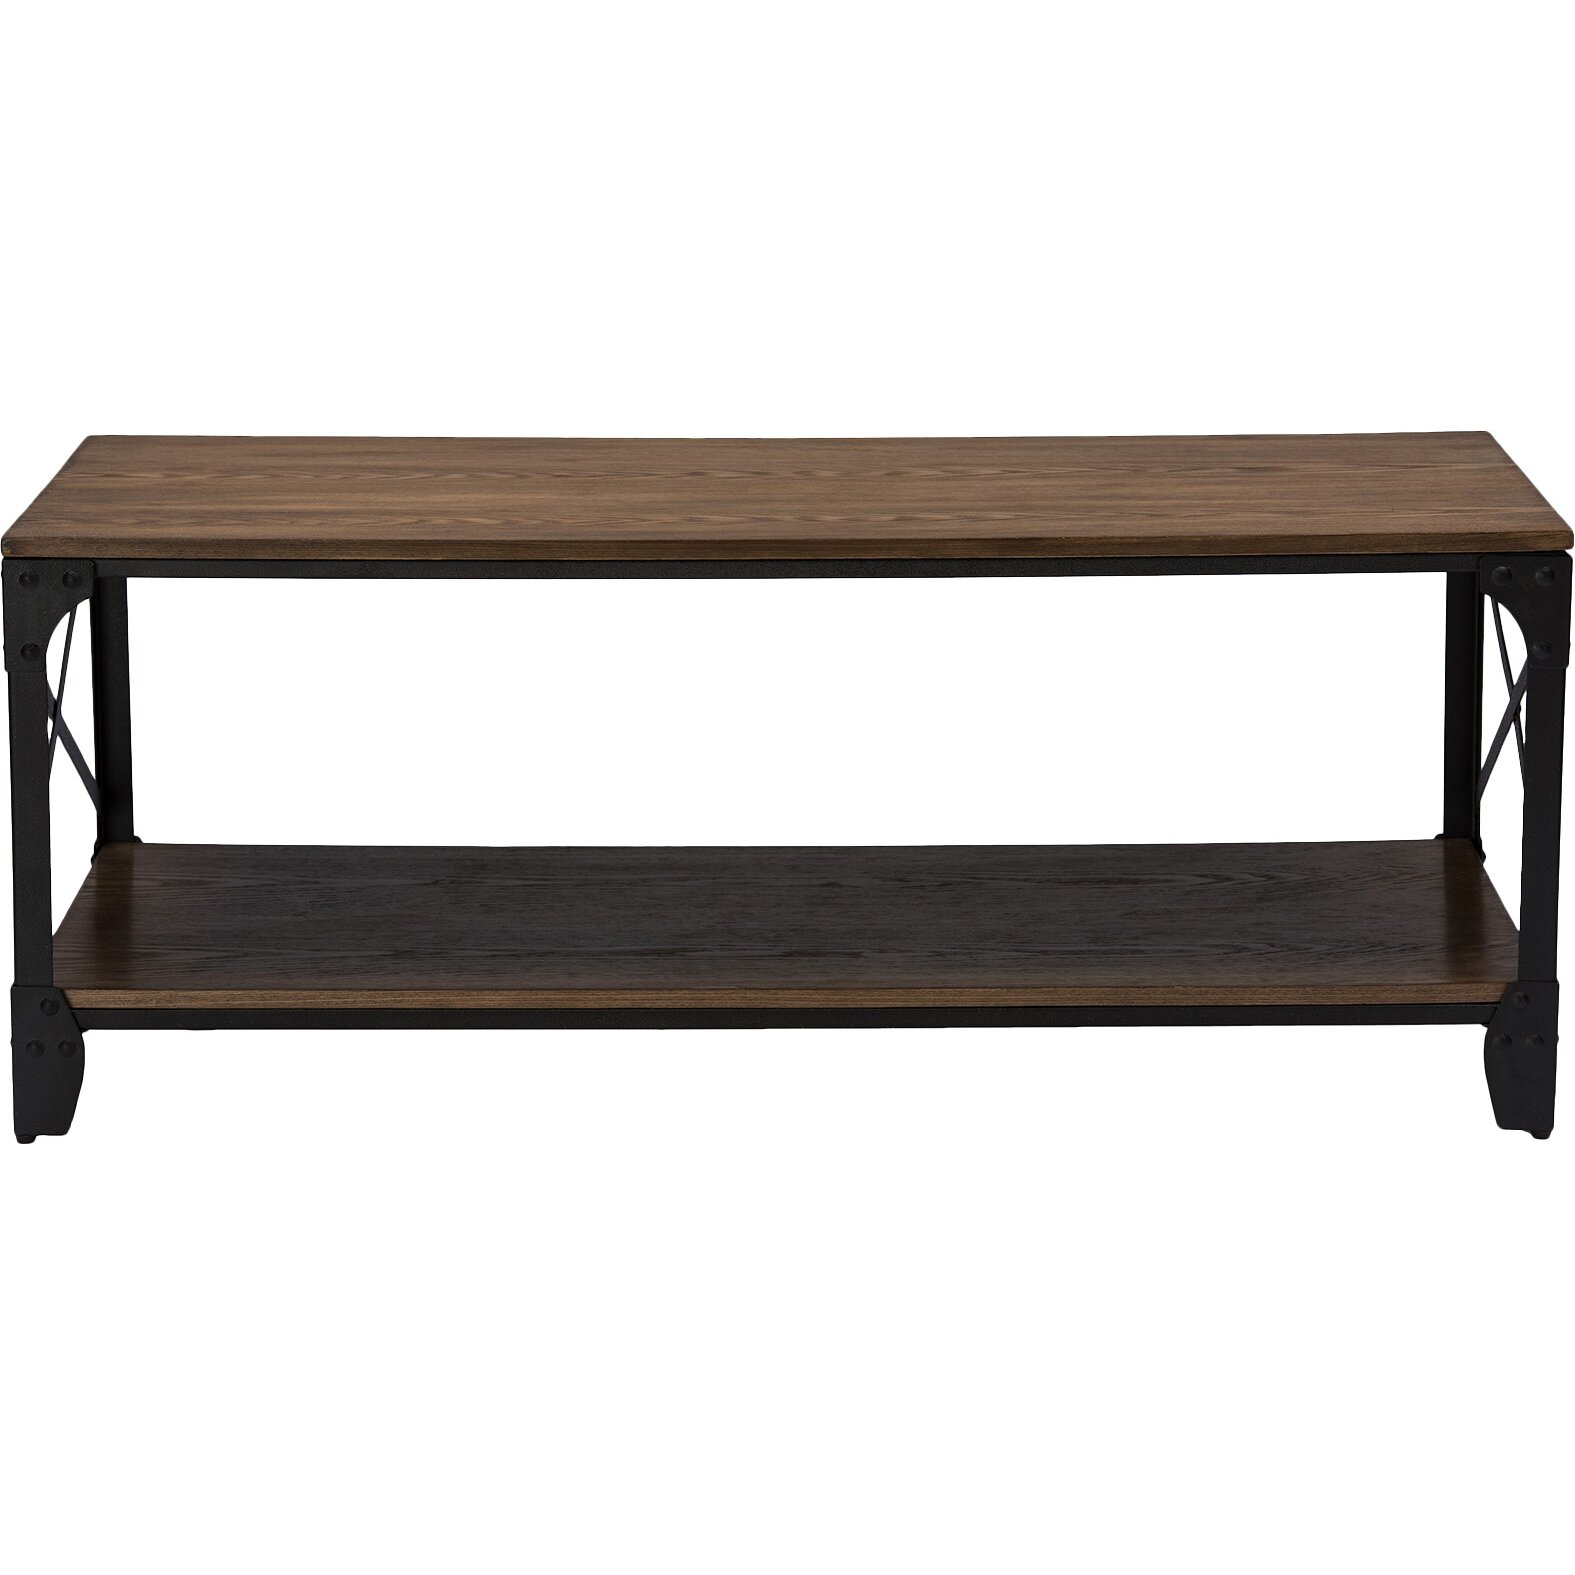 wholesale interiors baxton studio coffee table reviews